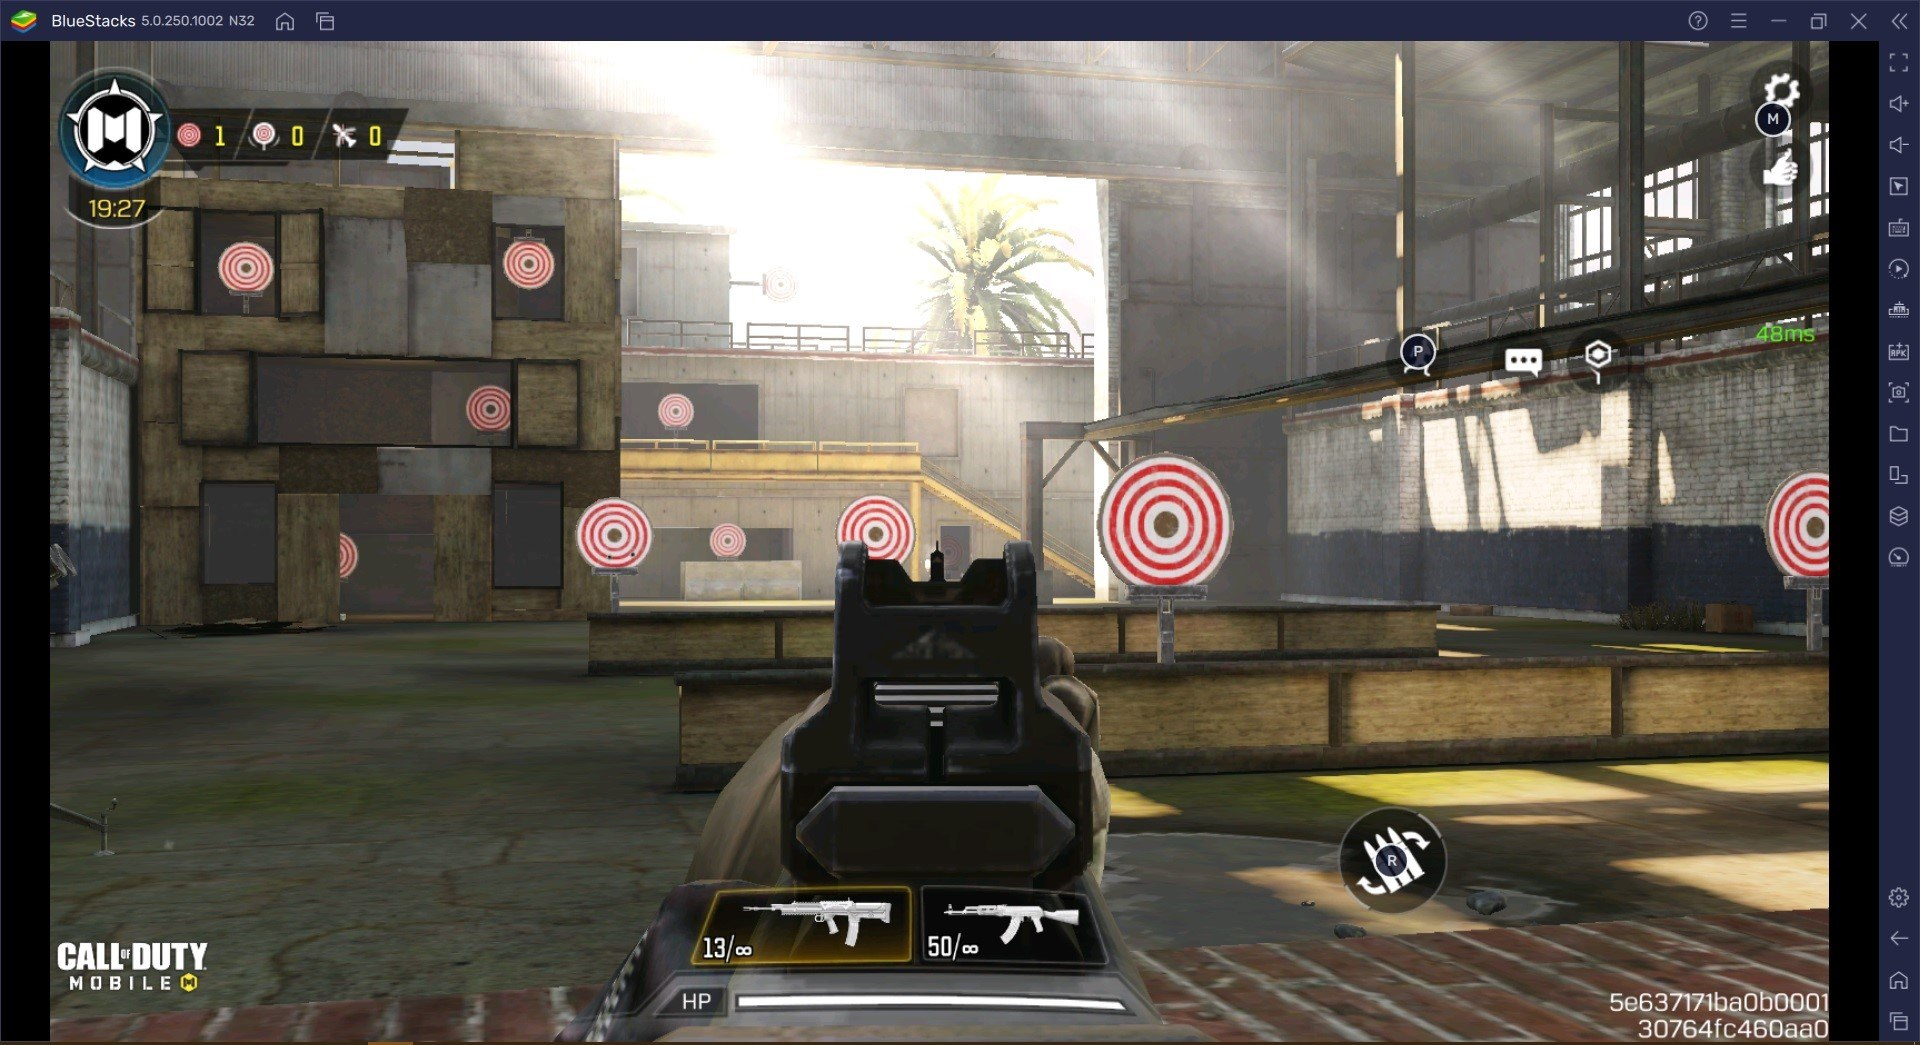 Call of Duty: Mobile Weapon Gunsmith Guide — Holger 26 is the New Chopper